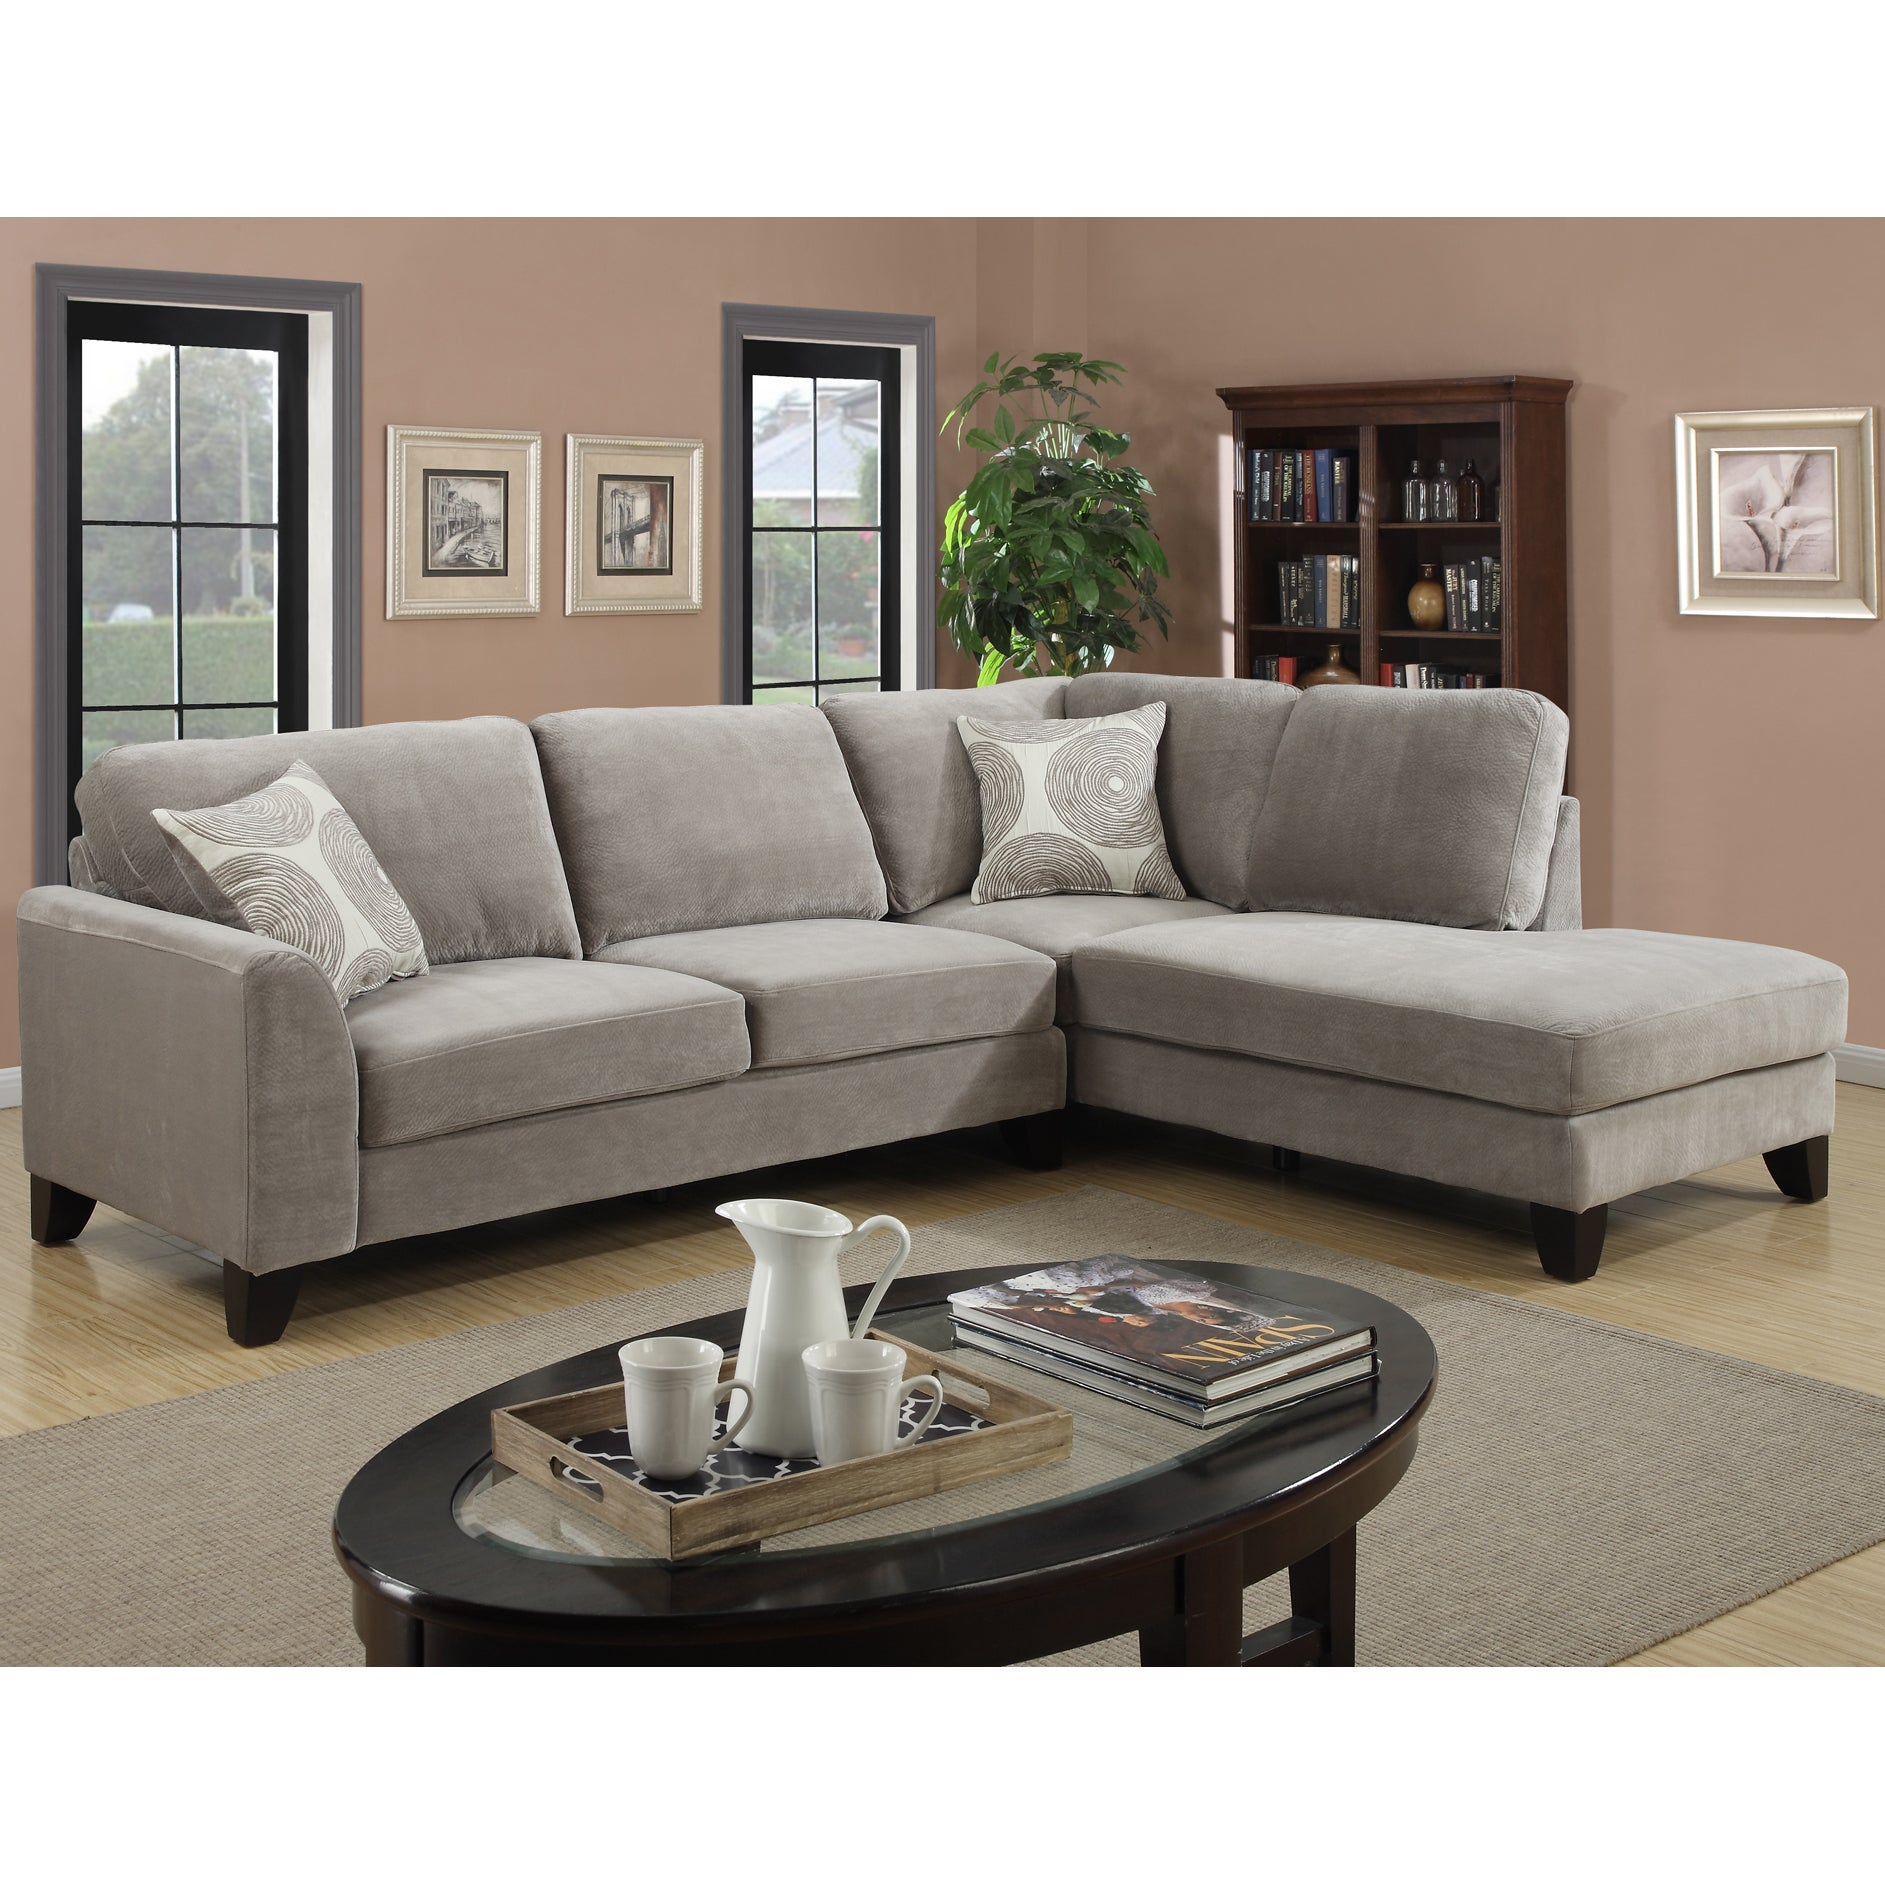 Shop Porter Reese Dove Grey Sectional Sofa With Optional Ottoman